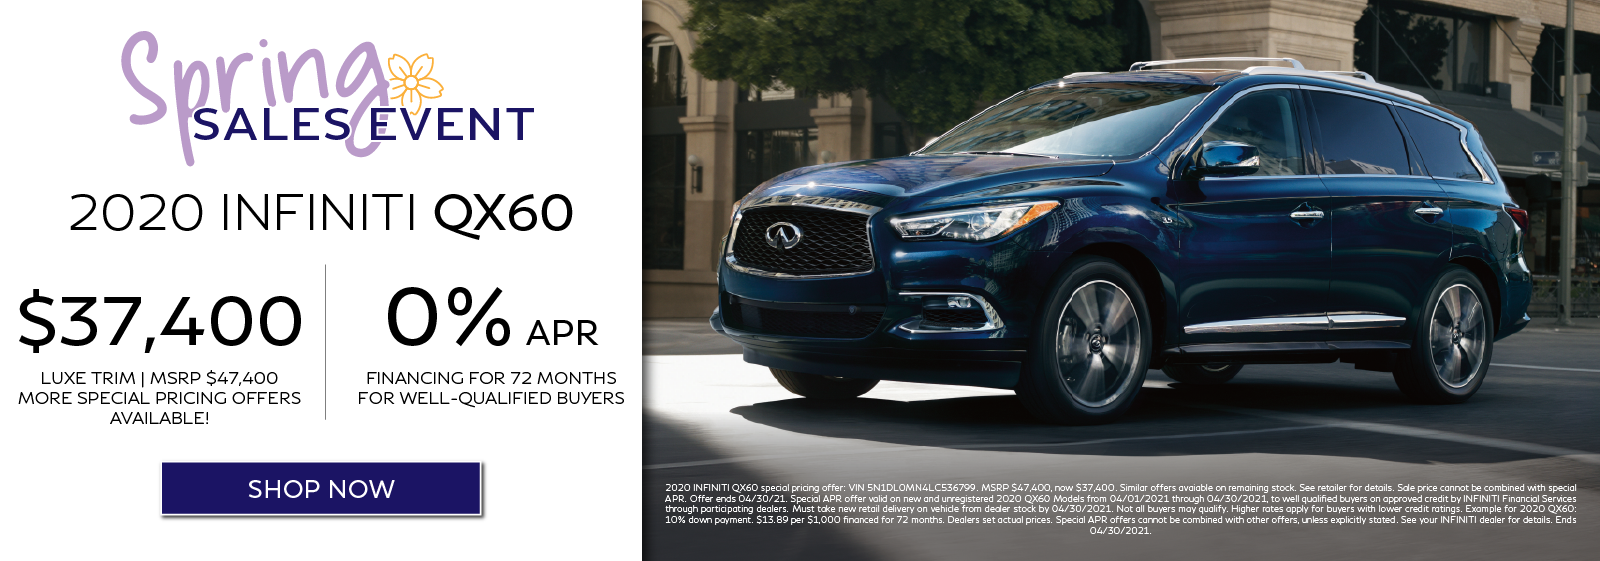 2020 QX60 APR Offer. Click to shop now.